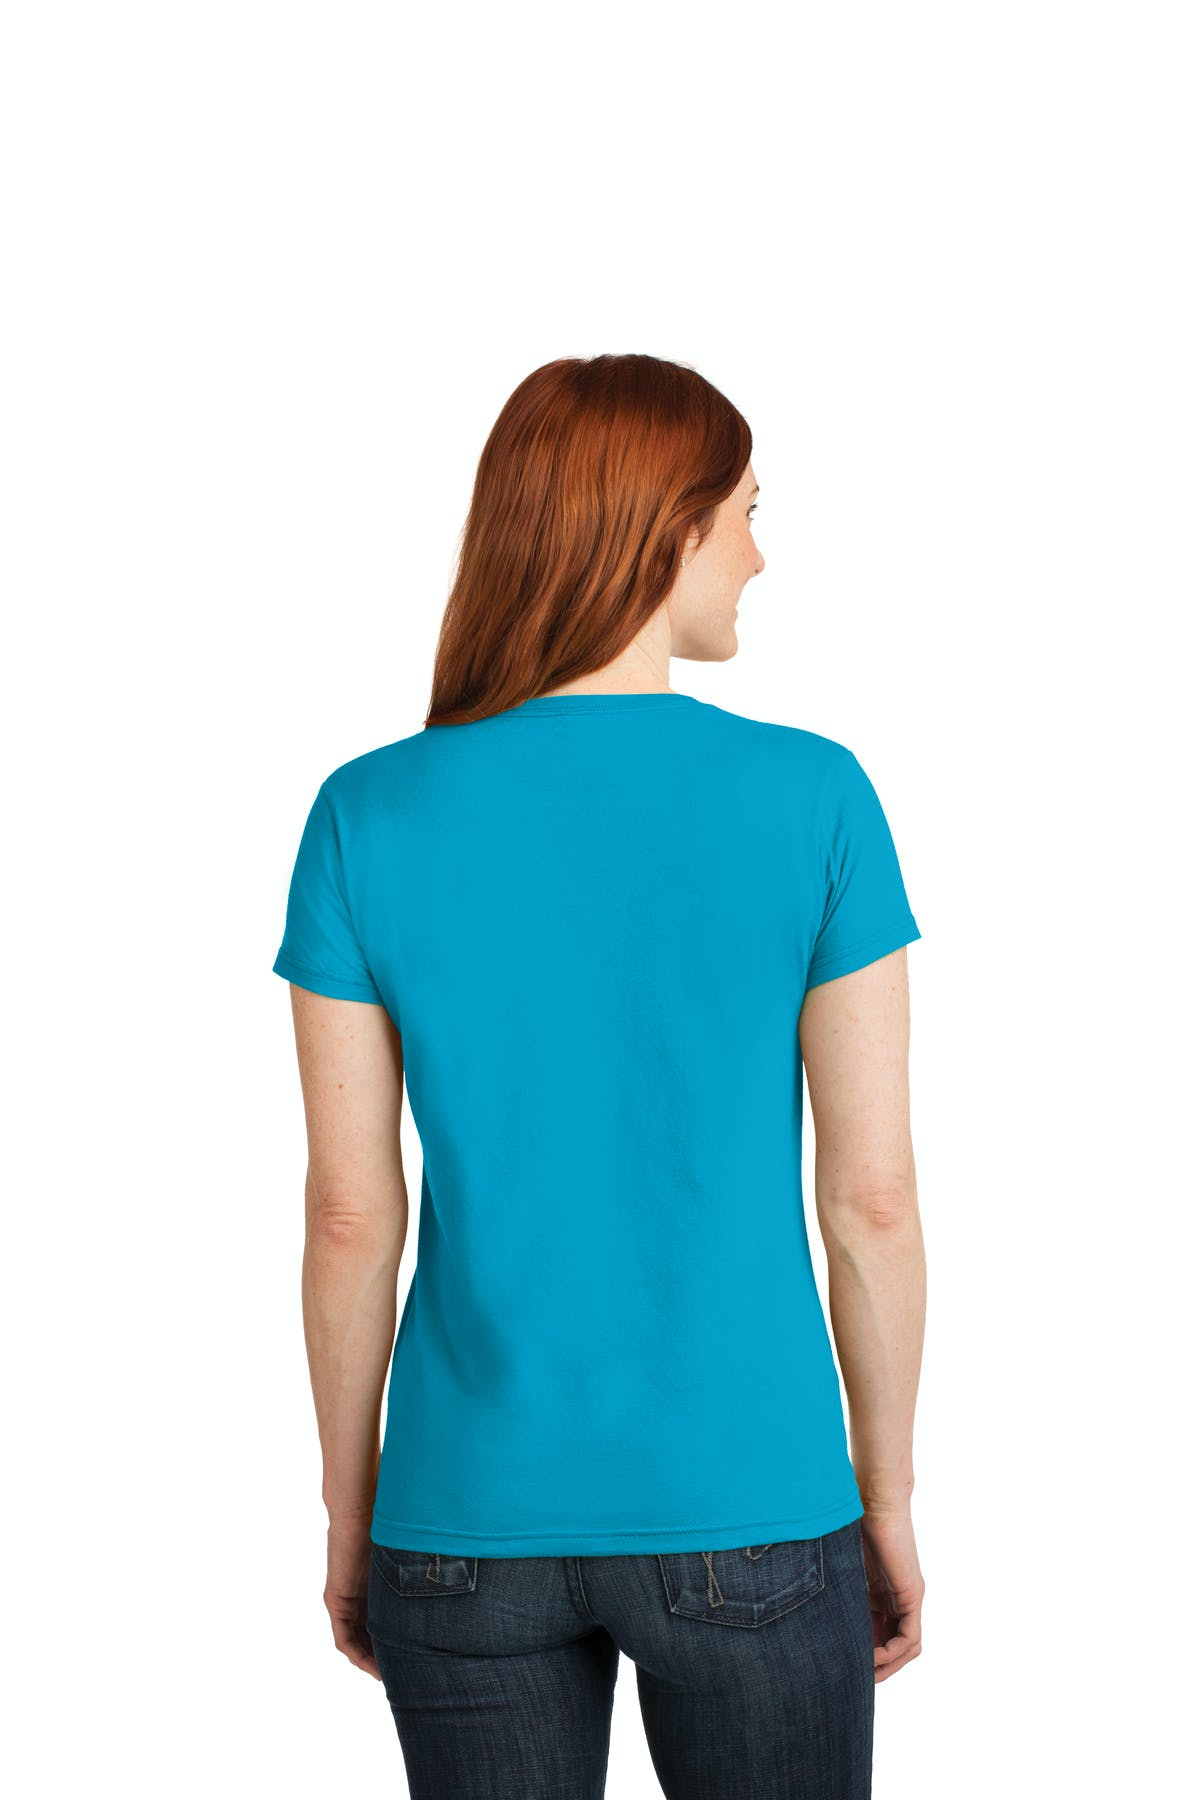 Anvil® Ladies 100% Combed Ring Spun Cotton V-Neck T-Shirt - sold by PRINT CITY GRAPHICS, INC